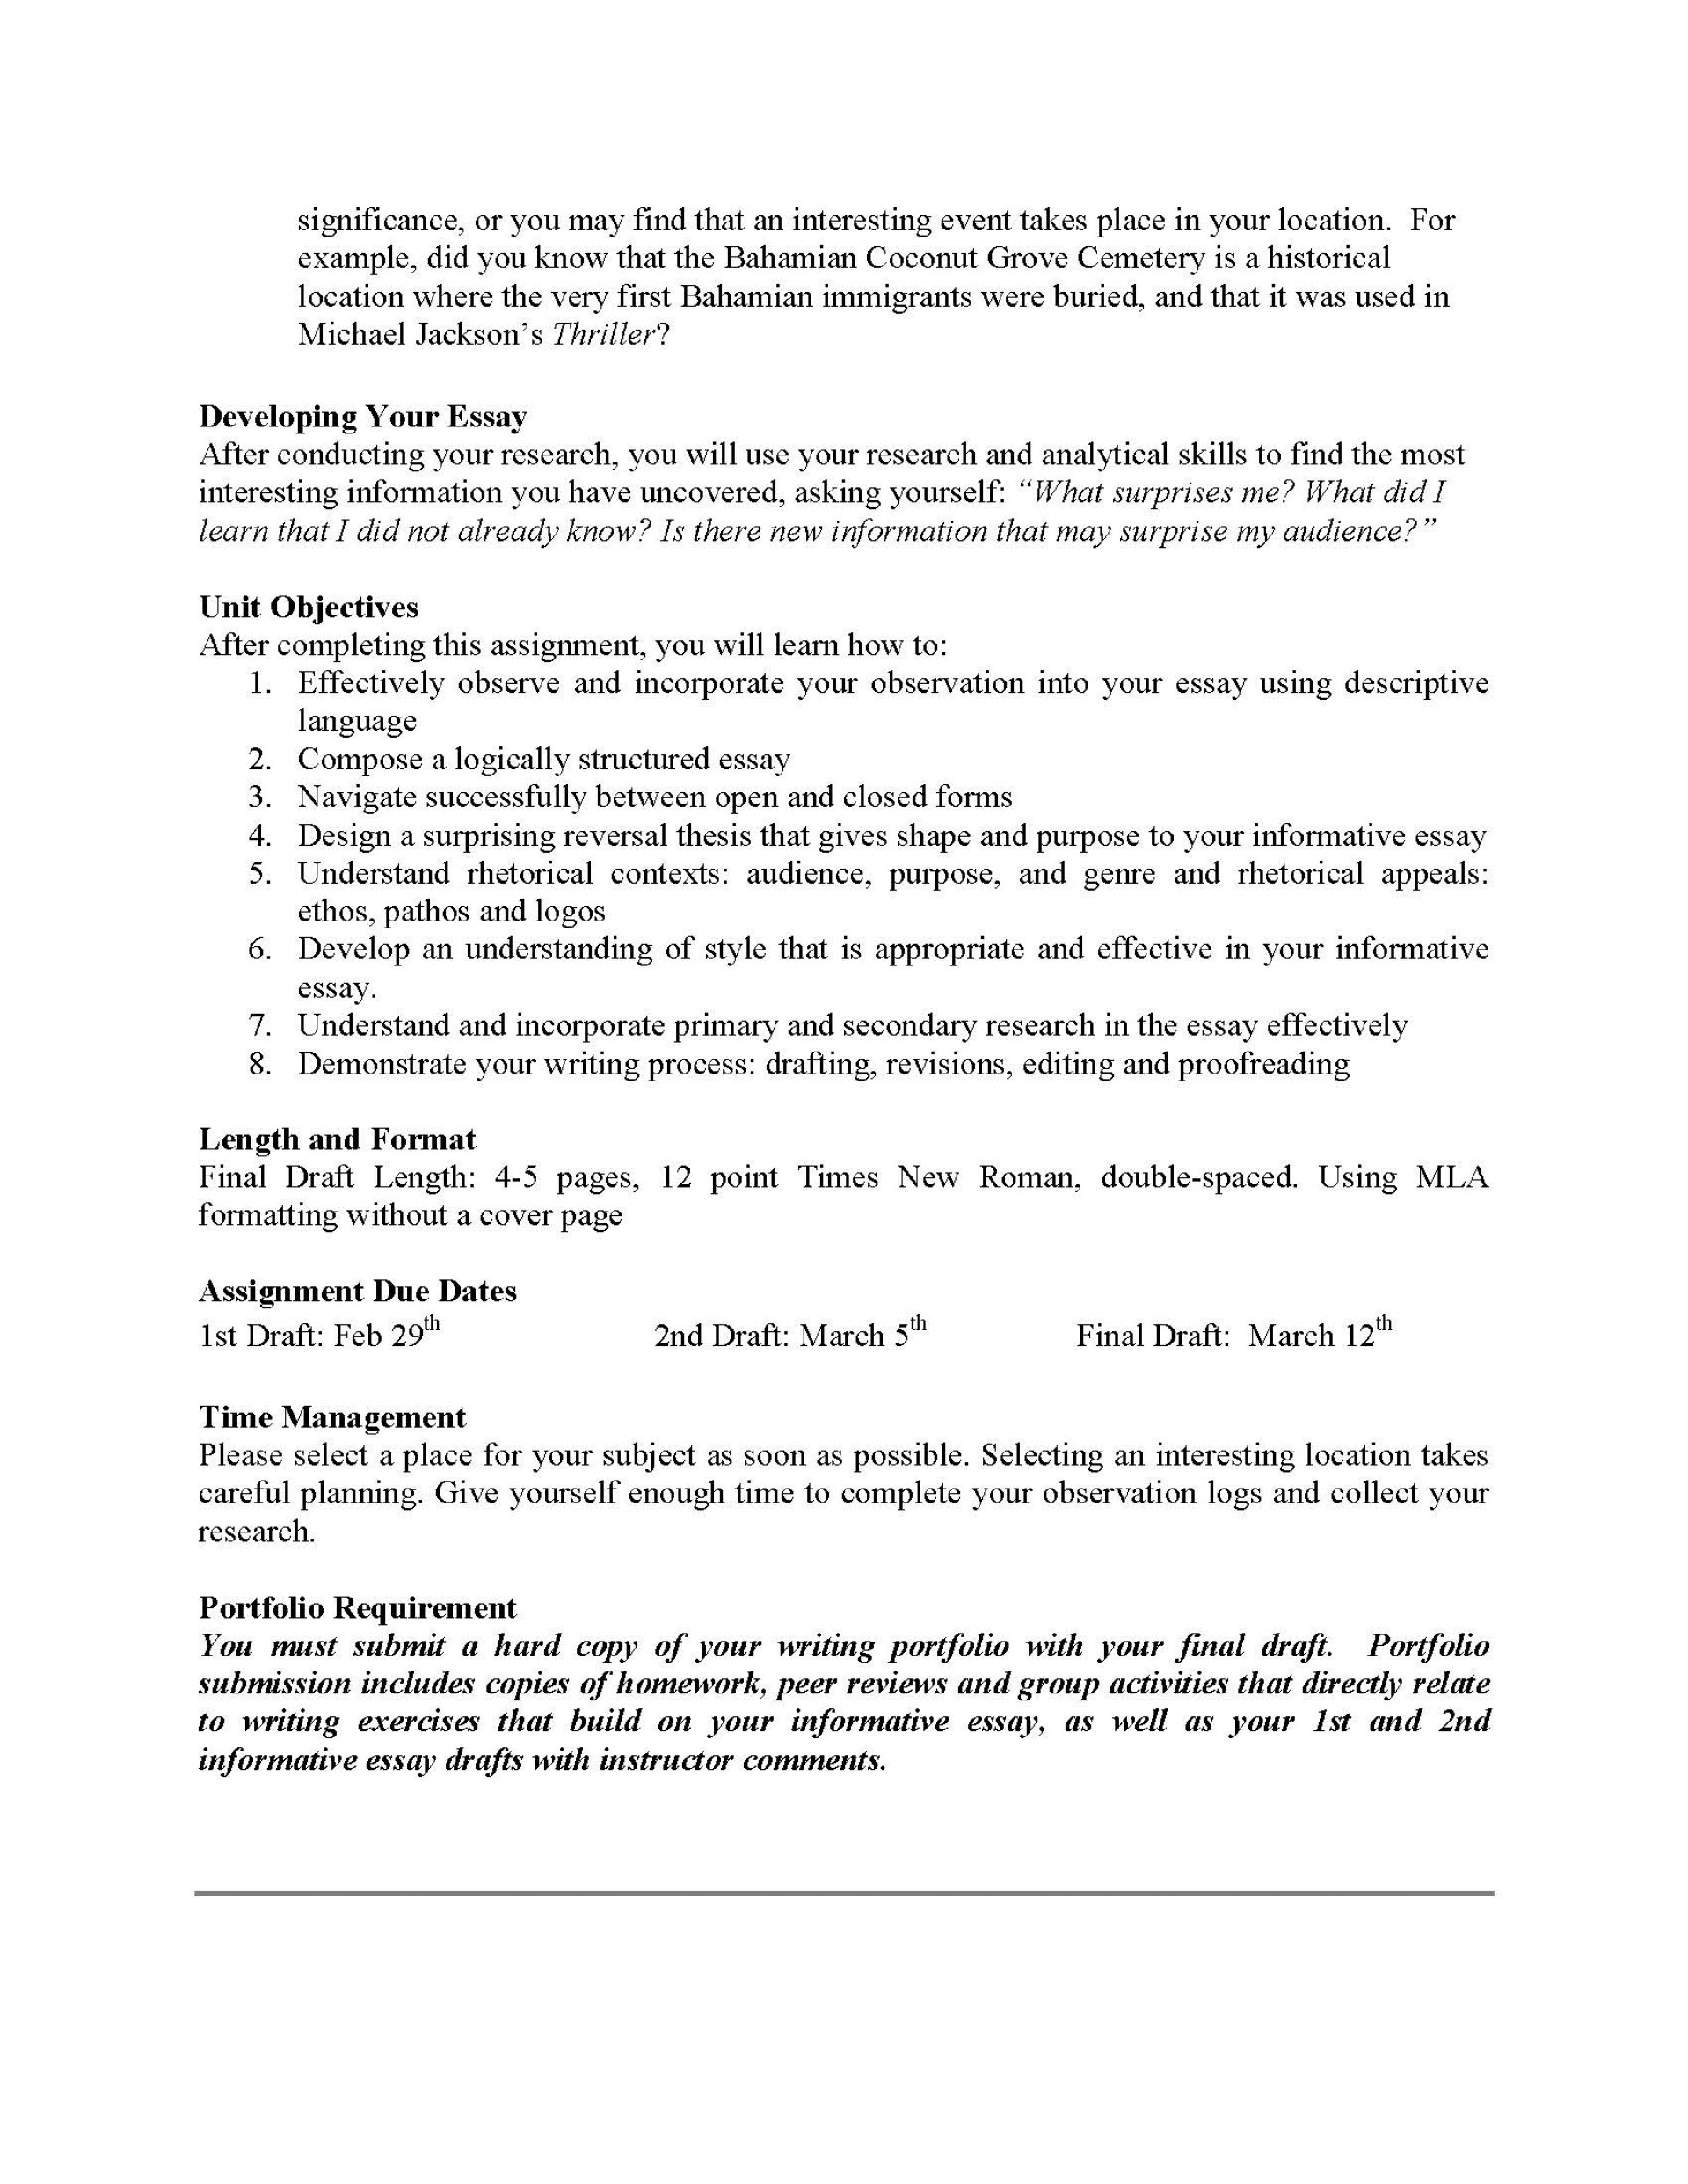 014 Informative Essay Unit Assignment Page 2 Dreaded Prompts 5th Grade 9th Graphic Organizer 1920